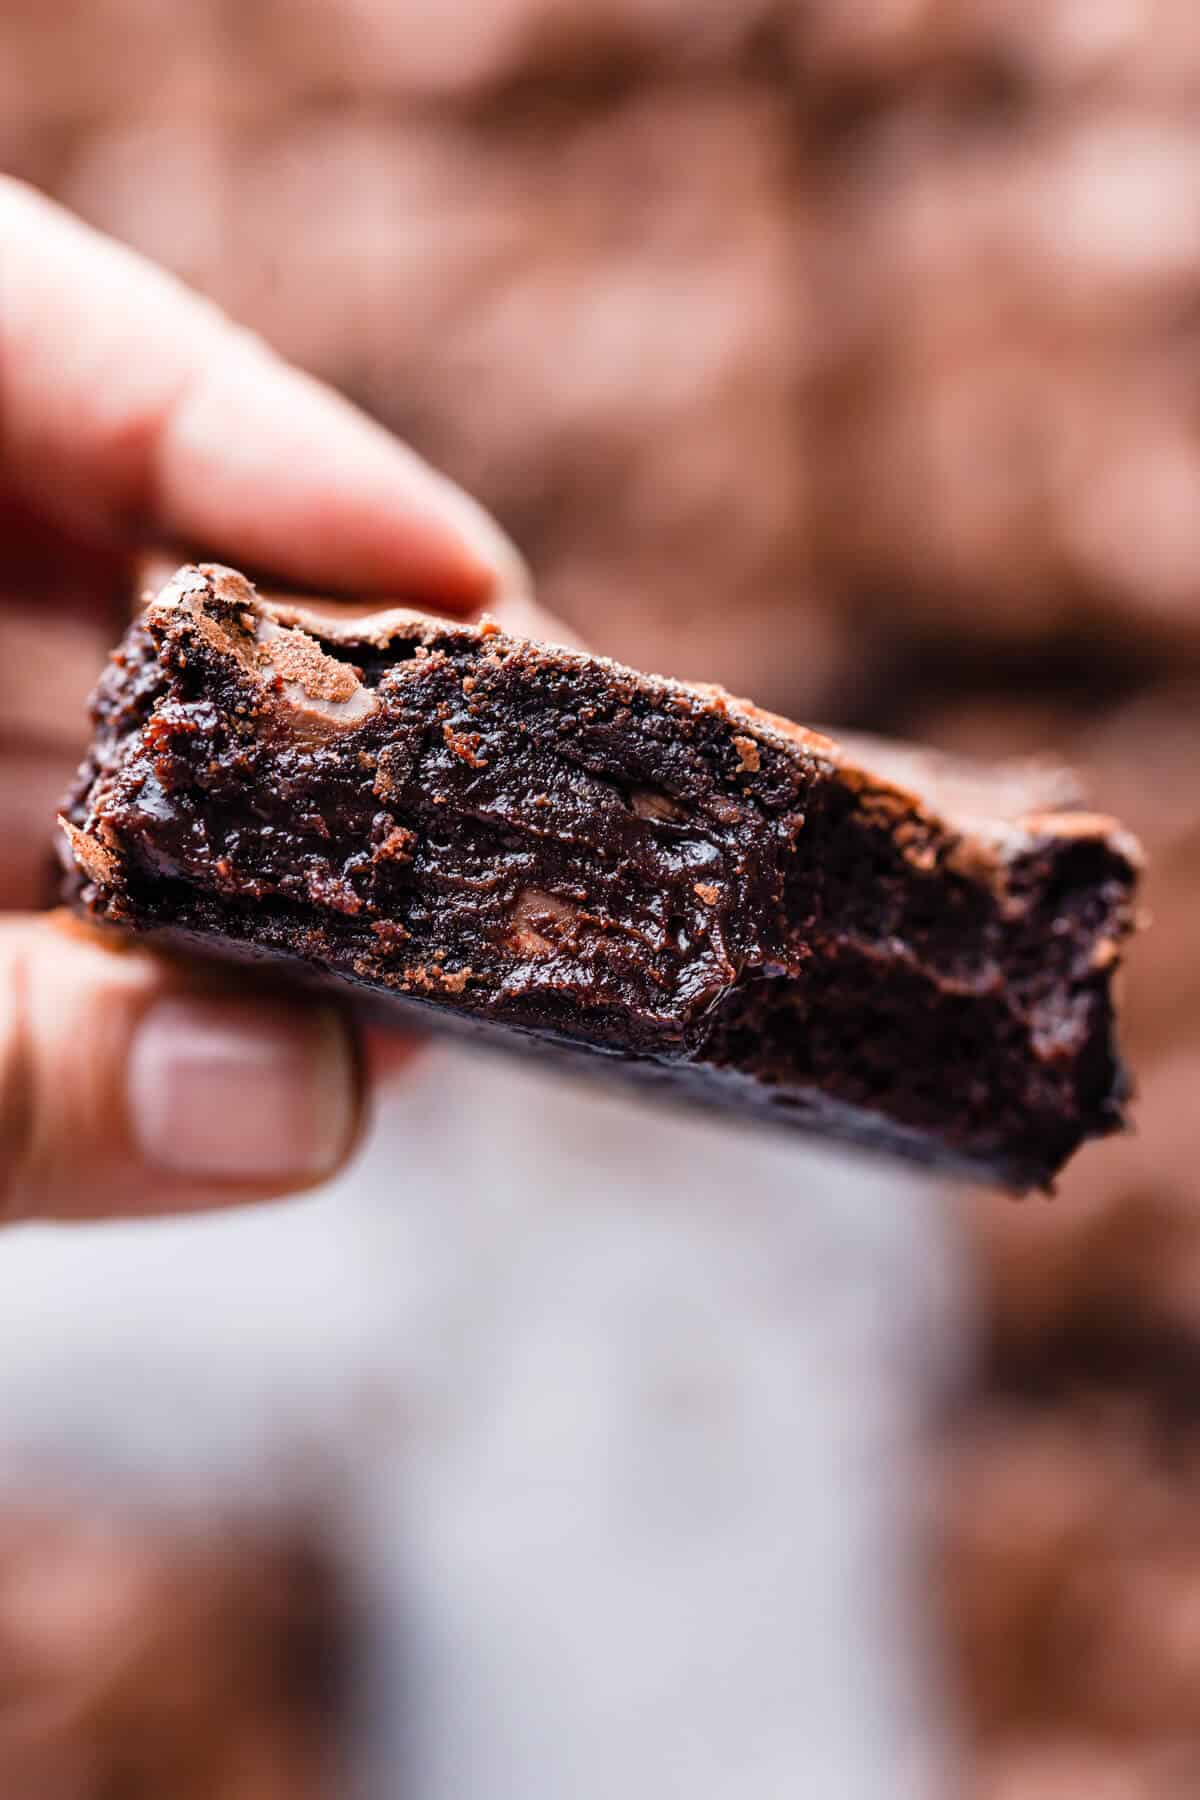 super close up of a person holding a slice of brownie showing it's gooey texture